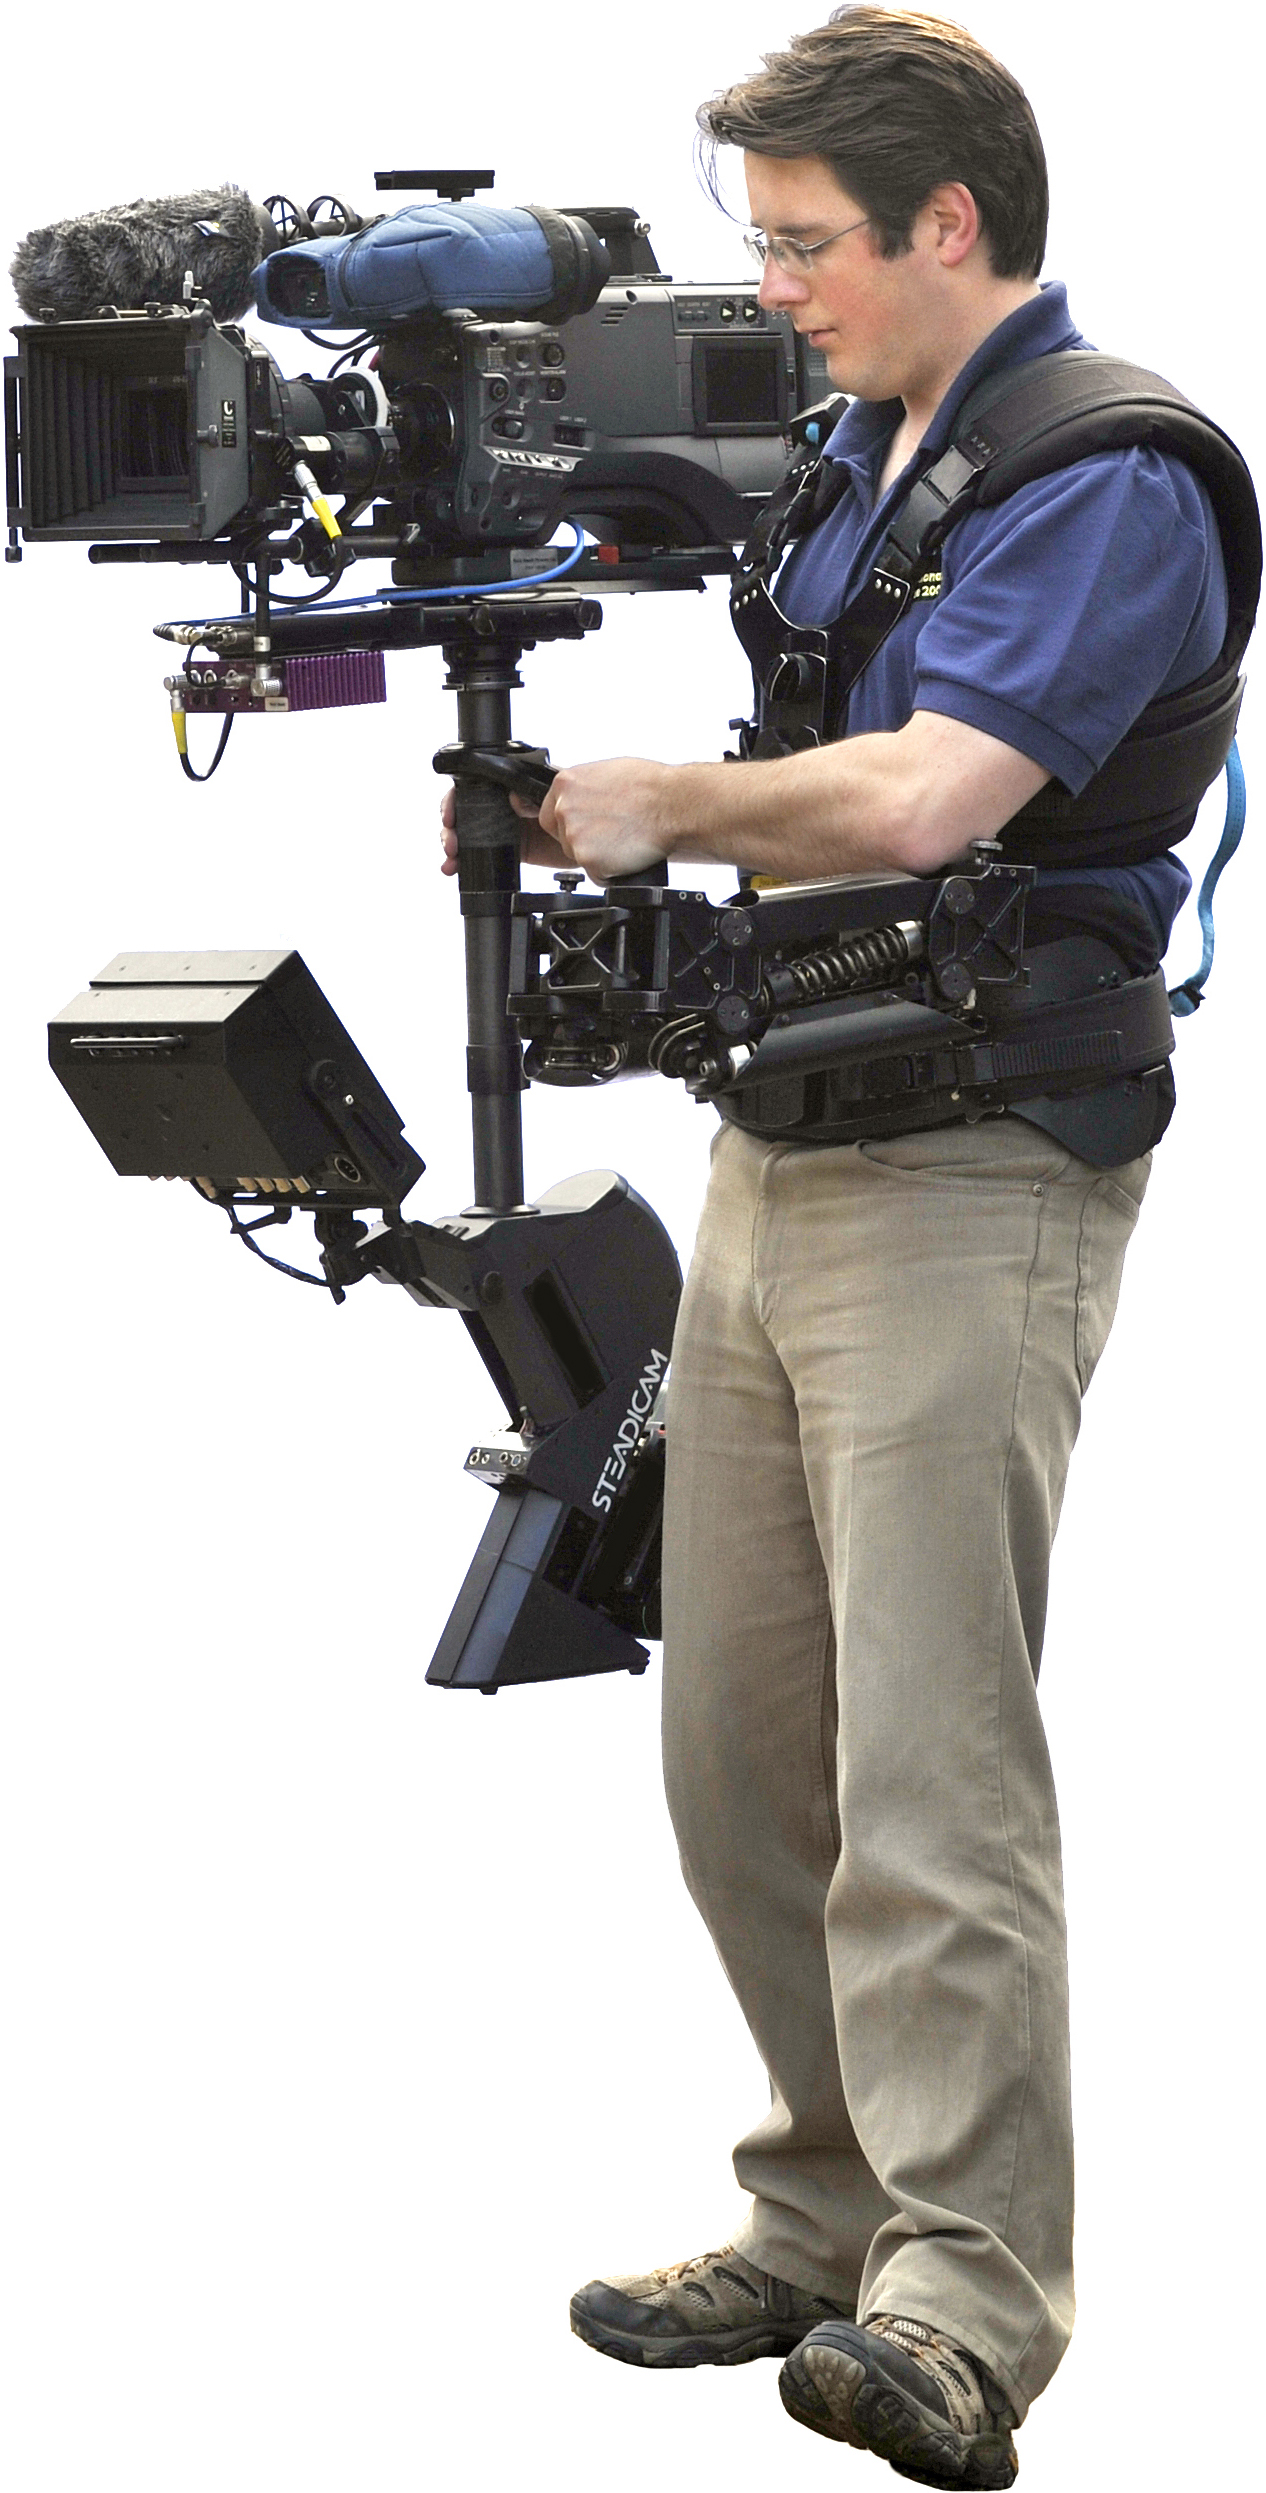 FileJohn E Fry Steadicam Operator UK